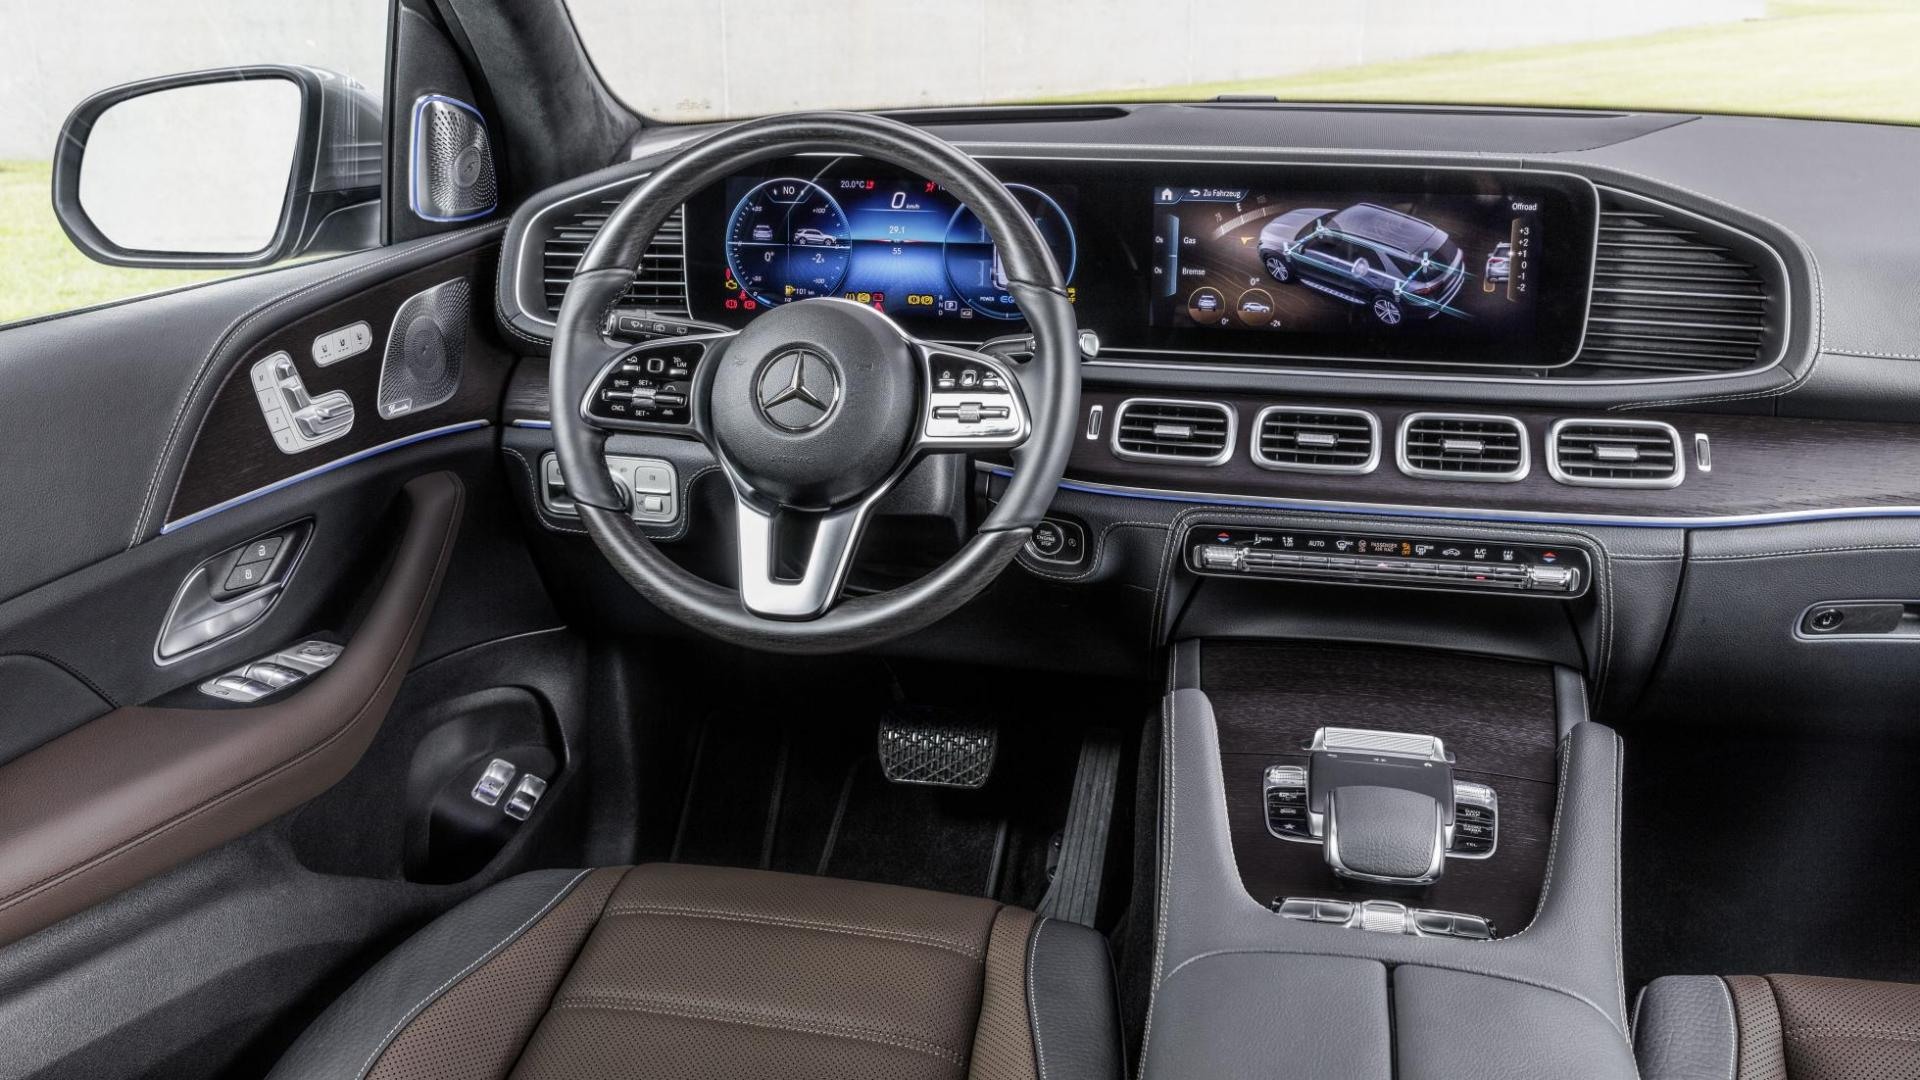 Mercedes GLE 2018 interieur dashboard